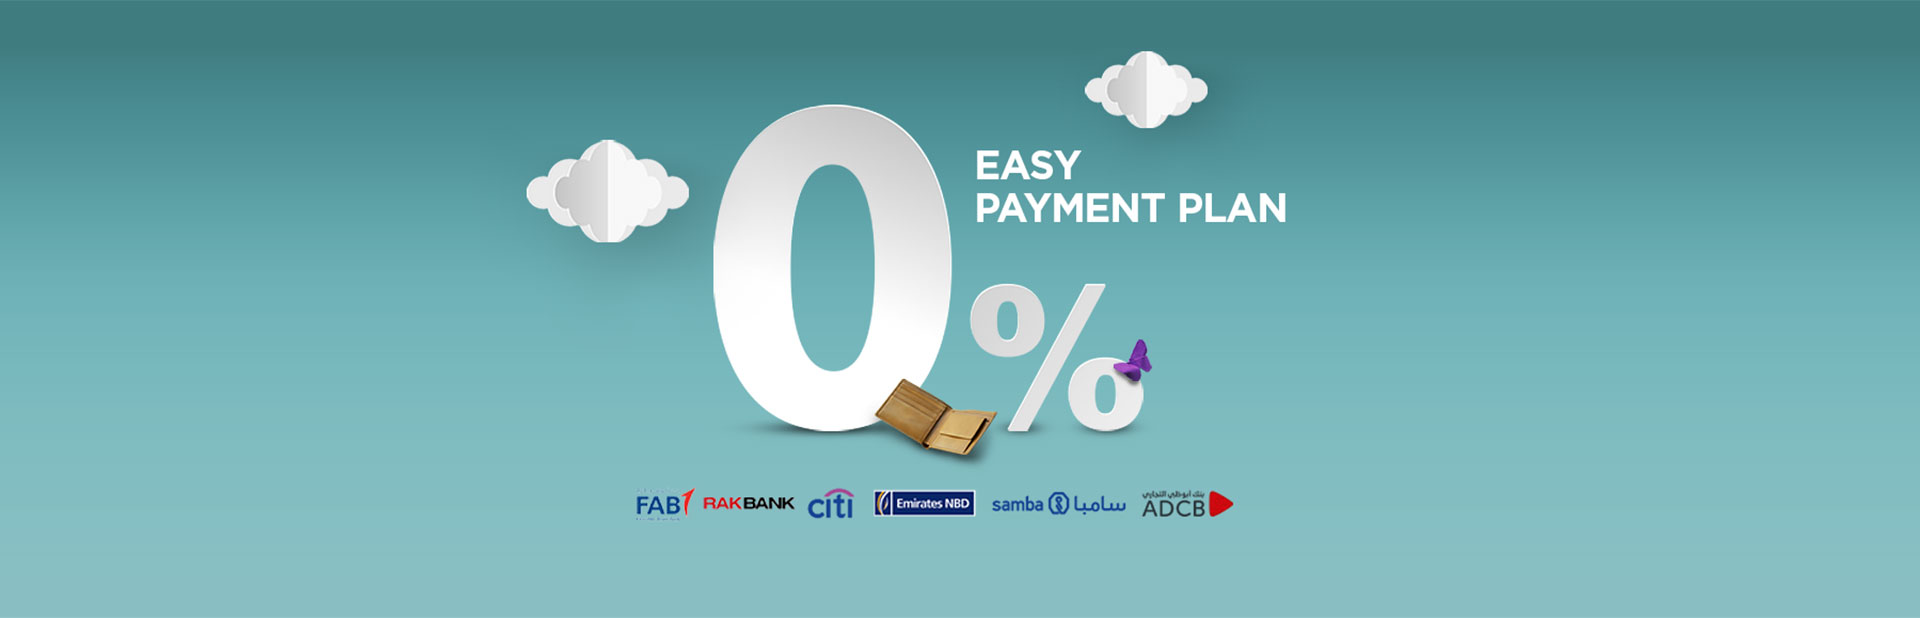 https://www.betterlifeuae.com/easy-payment-plan